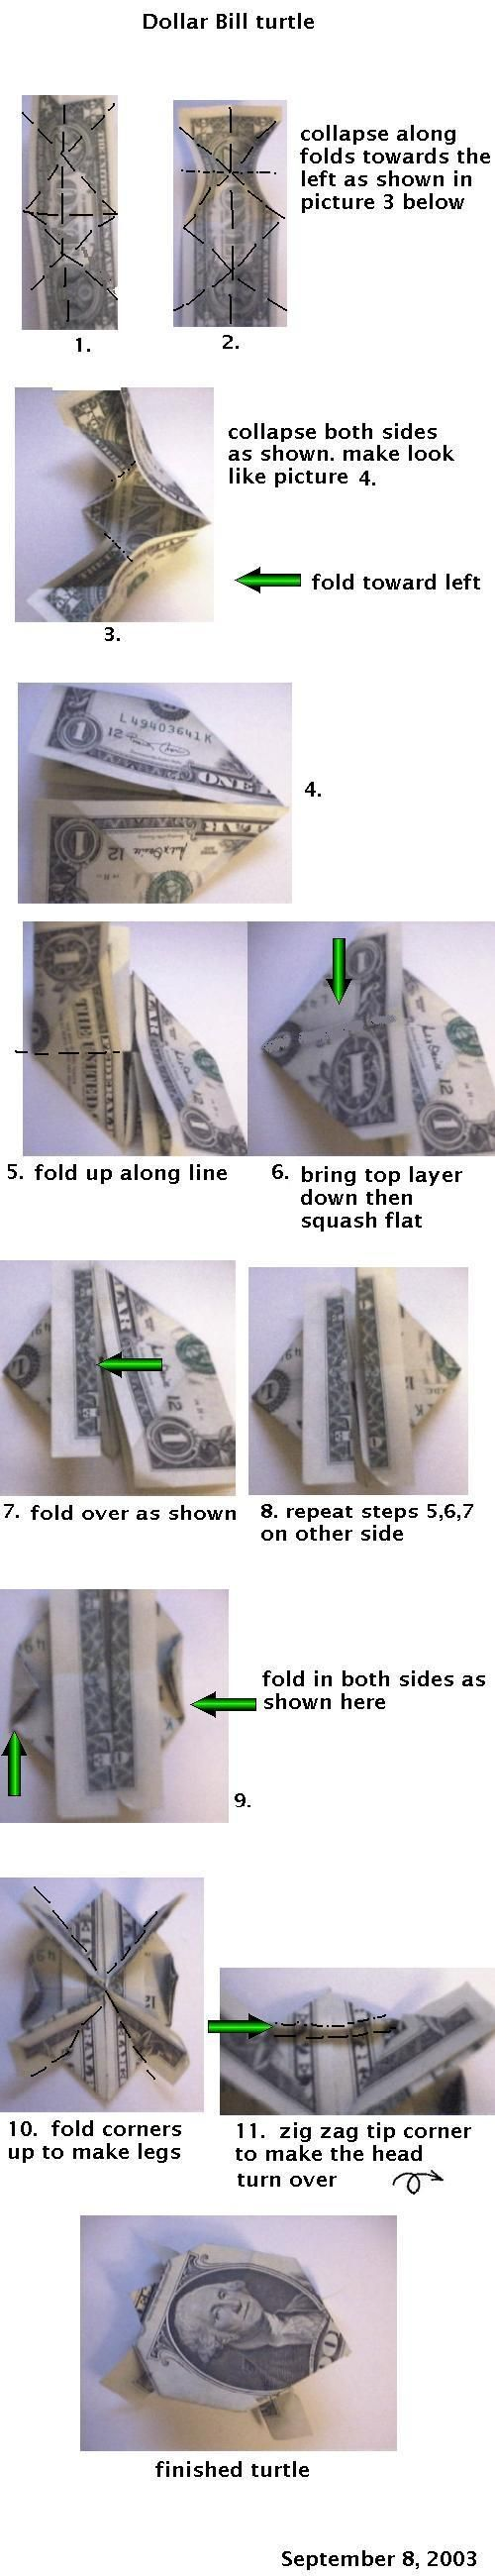 Money folding origami embroidery origami diy projects dollar origami jeuxipadfo Choice Image